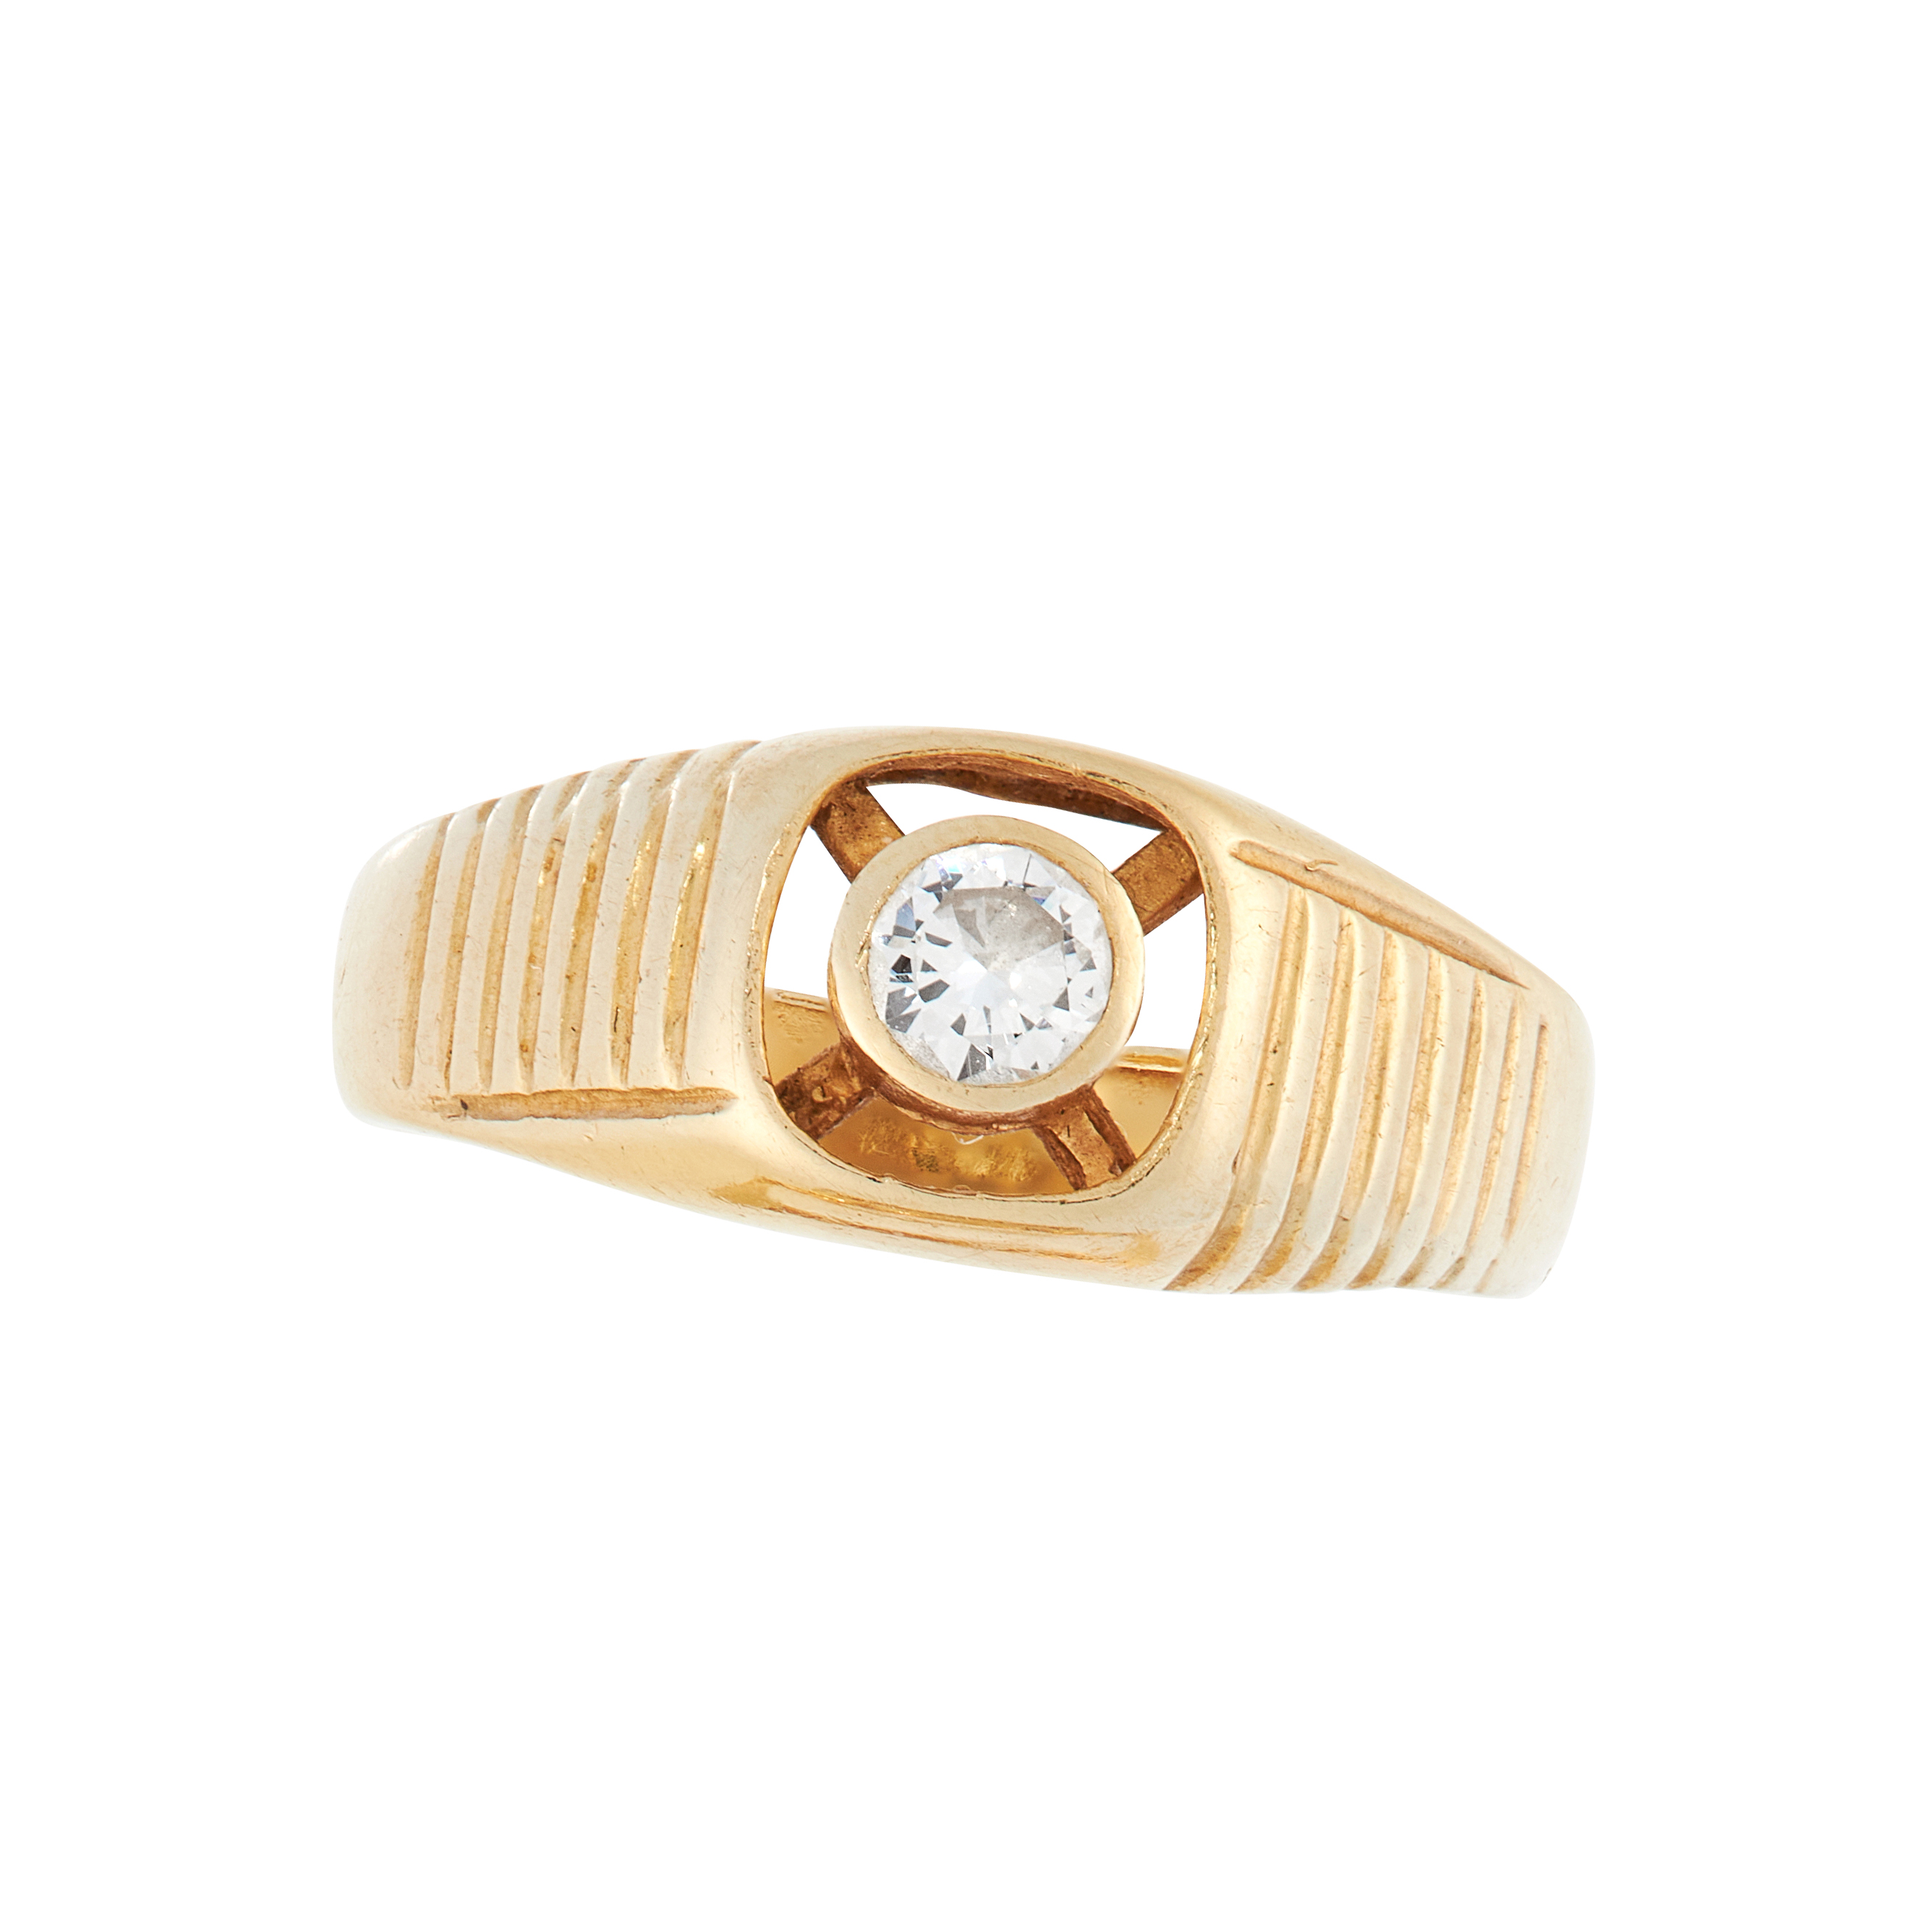 A VINTAGE DIAMOND DRESS RING in 18ct yellow gold, the tapering band with reeded decoration to the